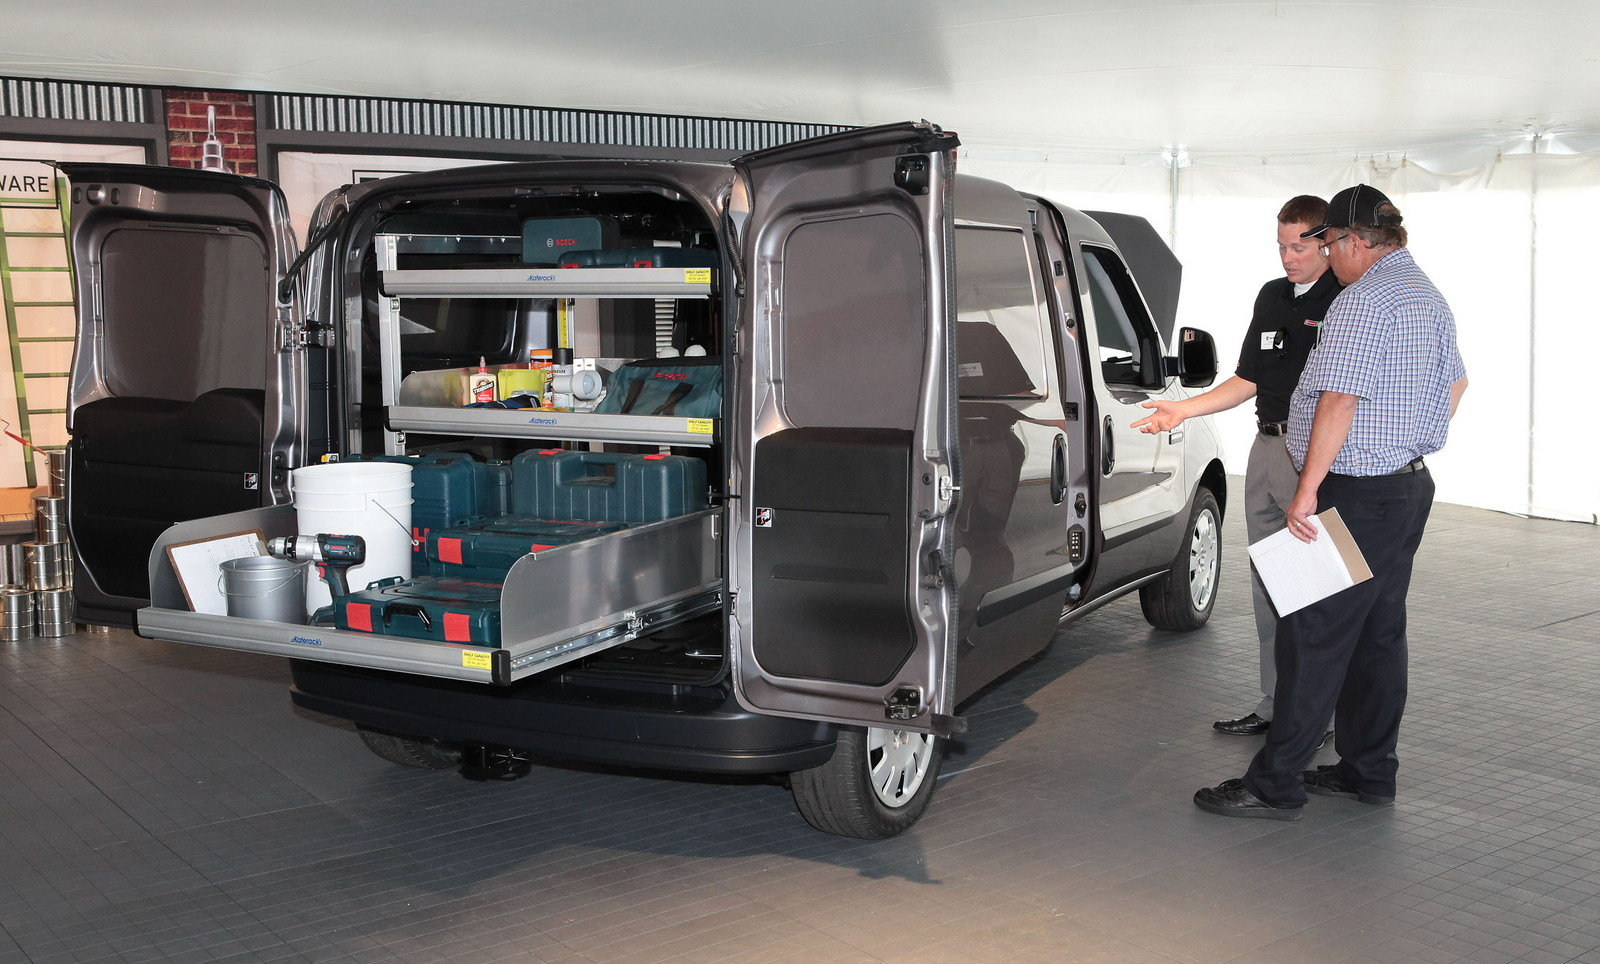 2015 ram promaster city picture 557846 car review. Black Bedroom Furniture Sets. Home Design Ideas